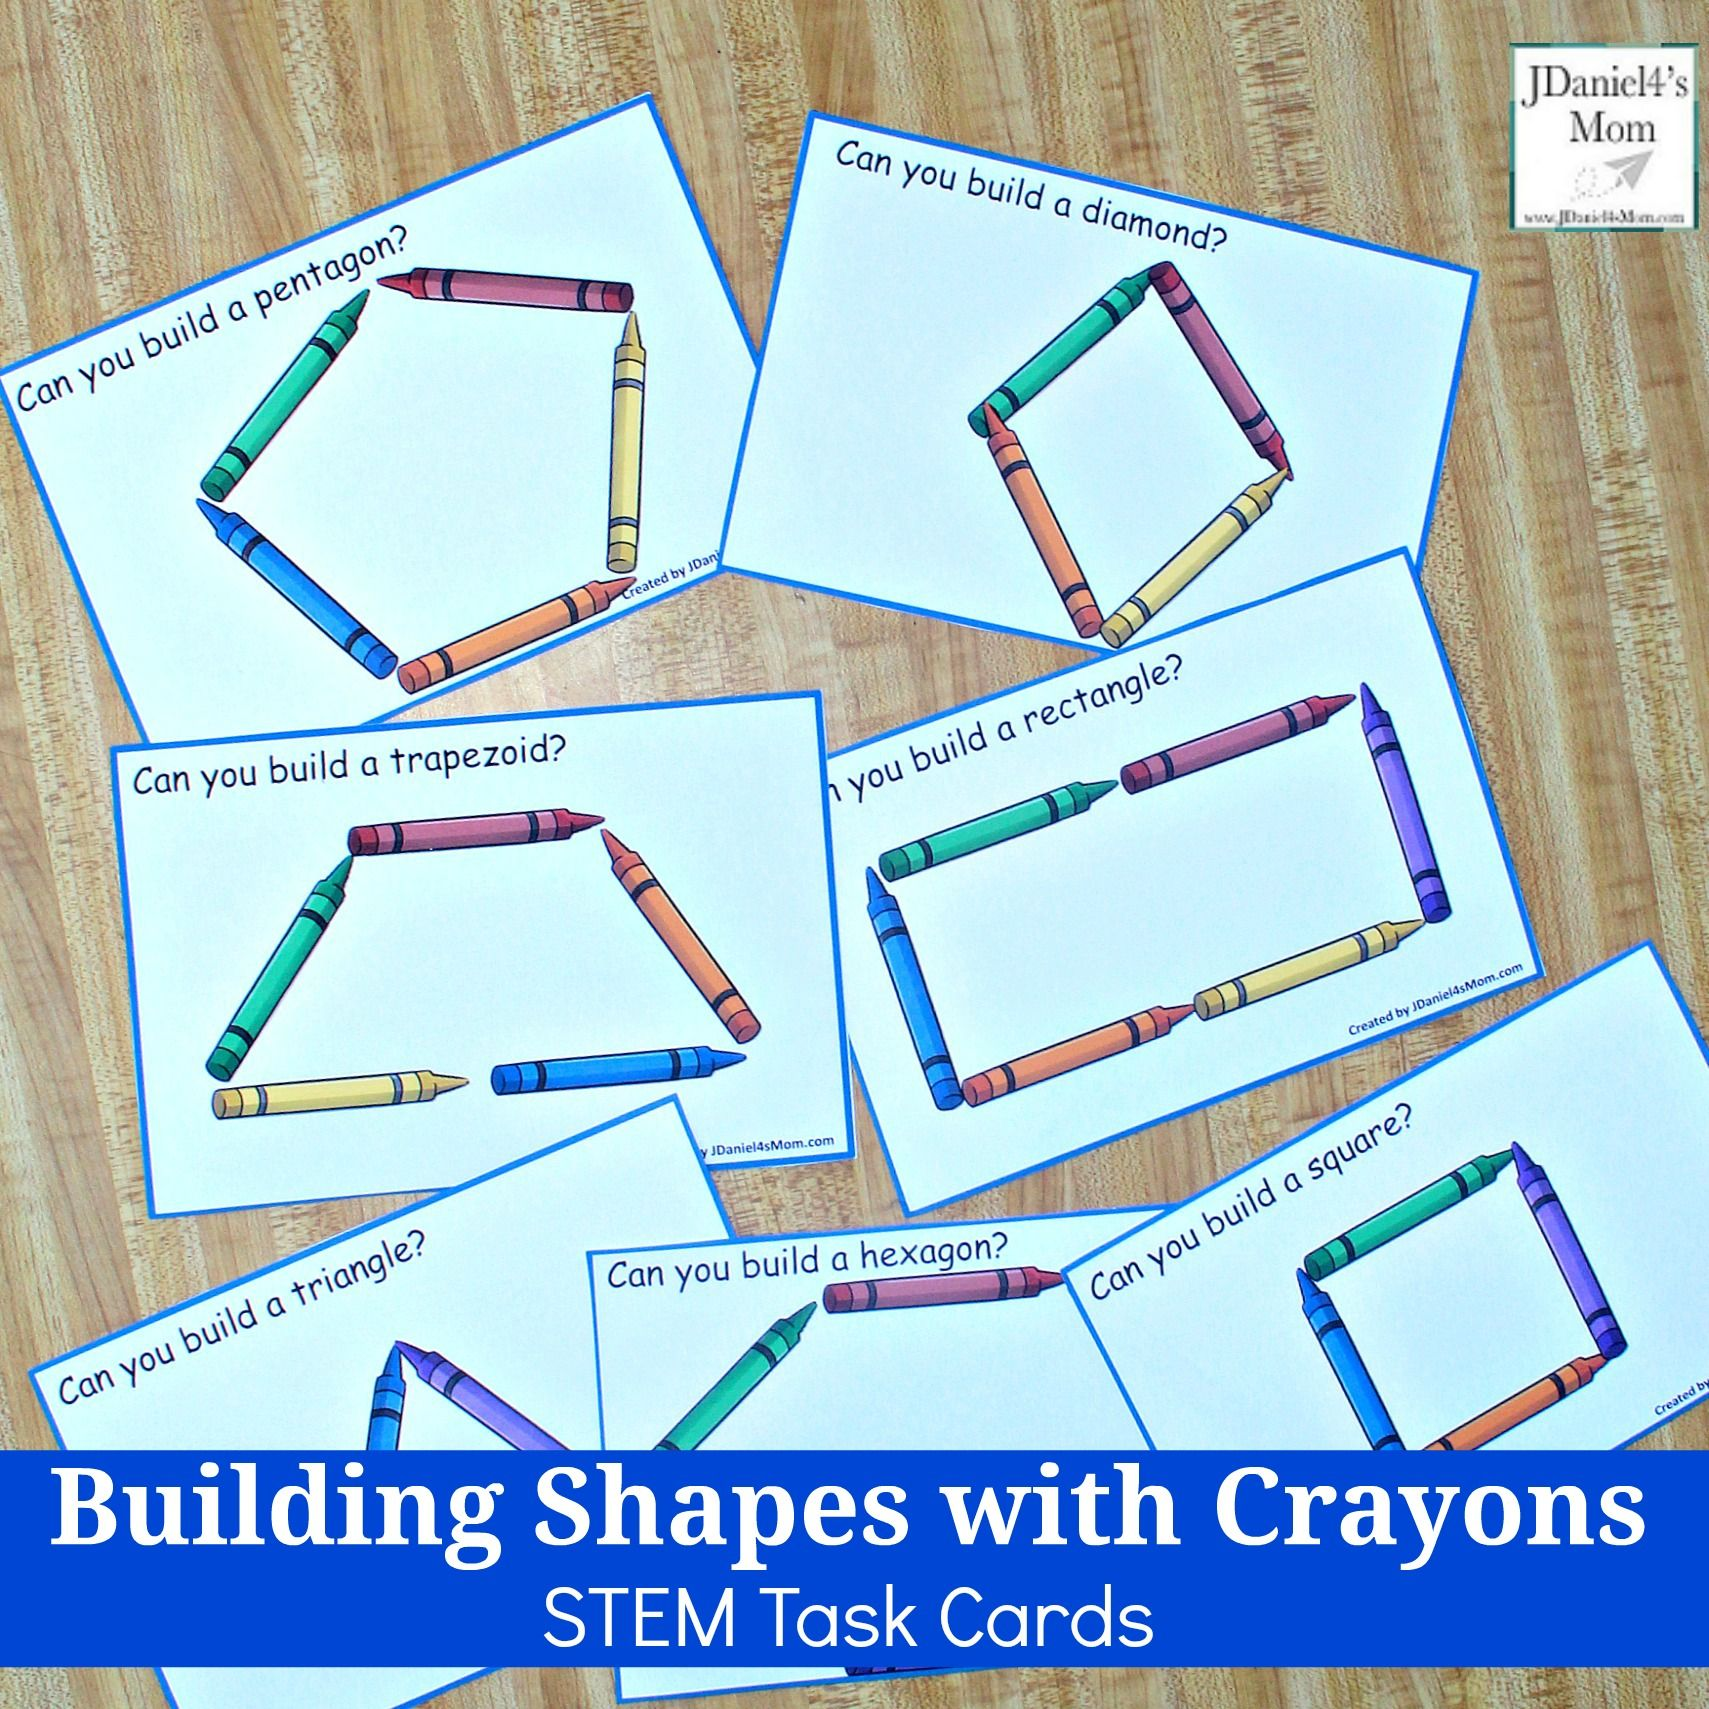 Building Shapes with Crayons STEM Task Cards | Math Resources for ...